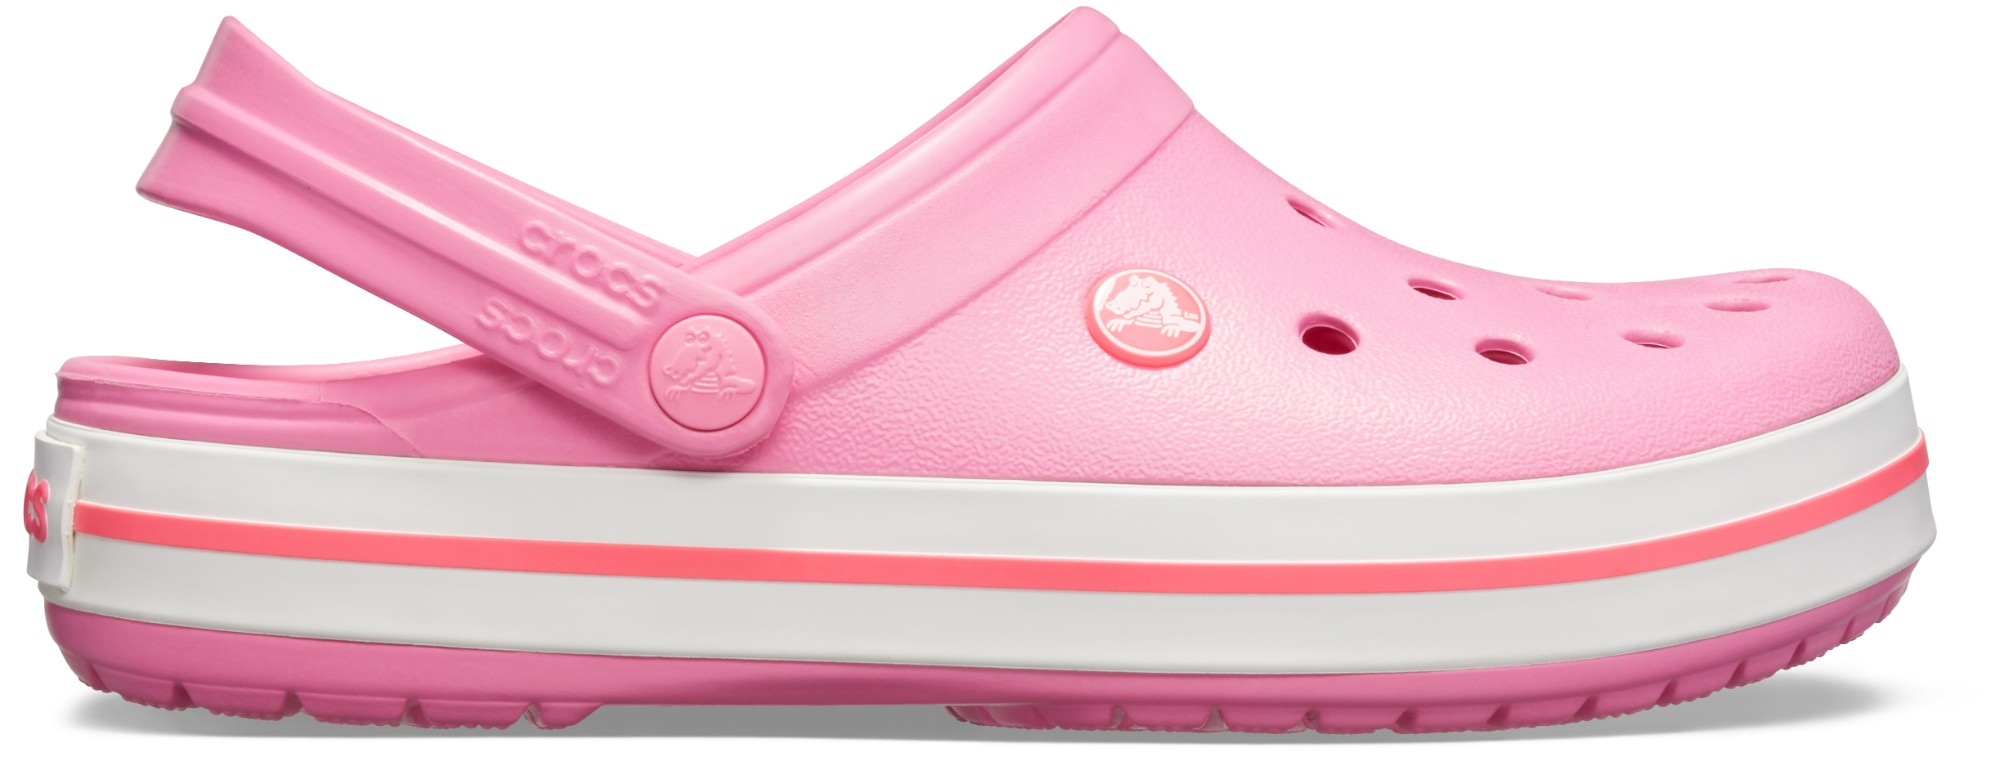 Crocs™ Crocband™ Pink Lemonade/White 39,5